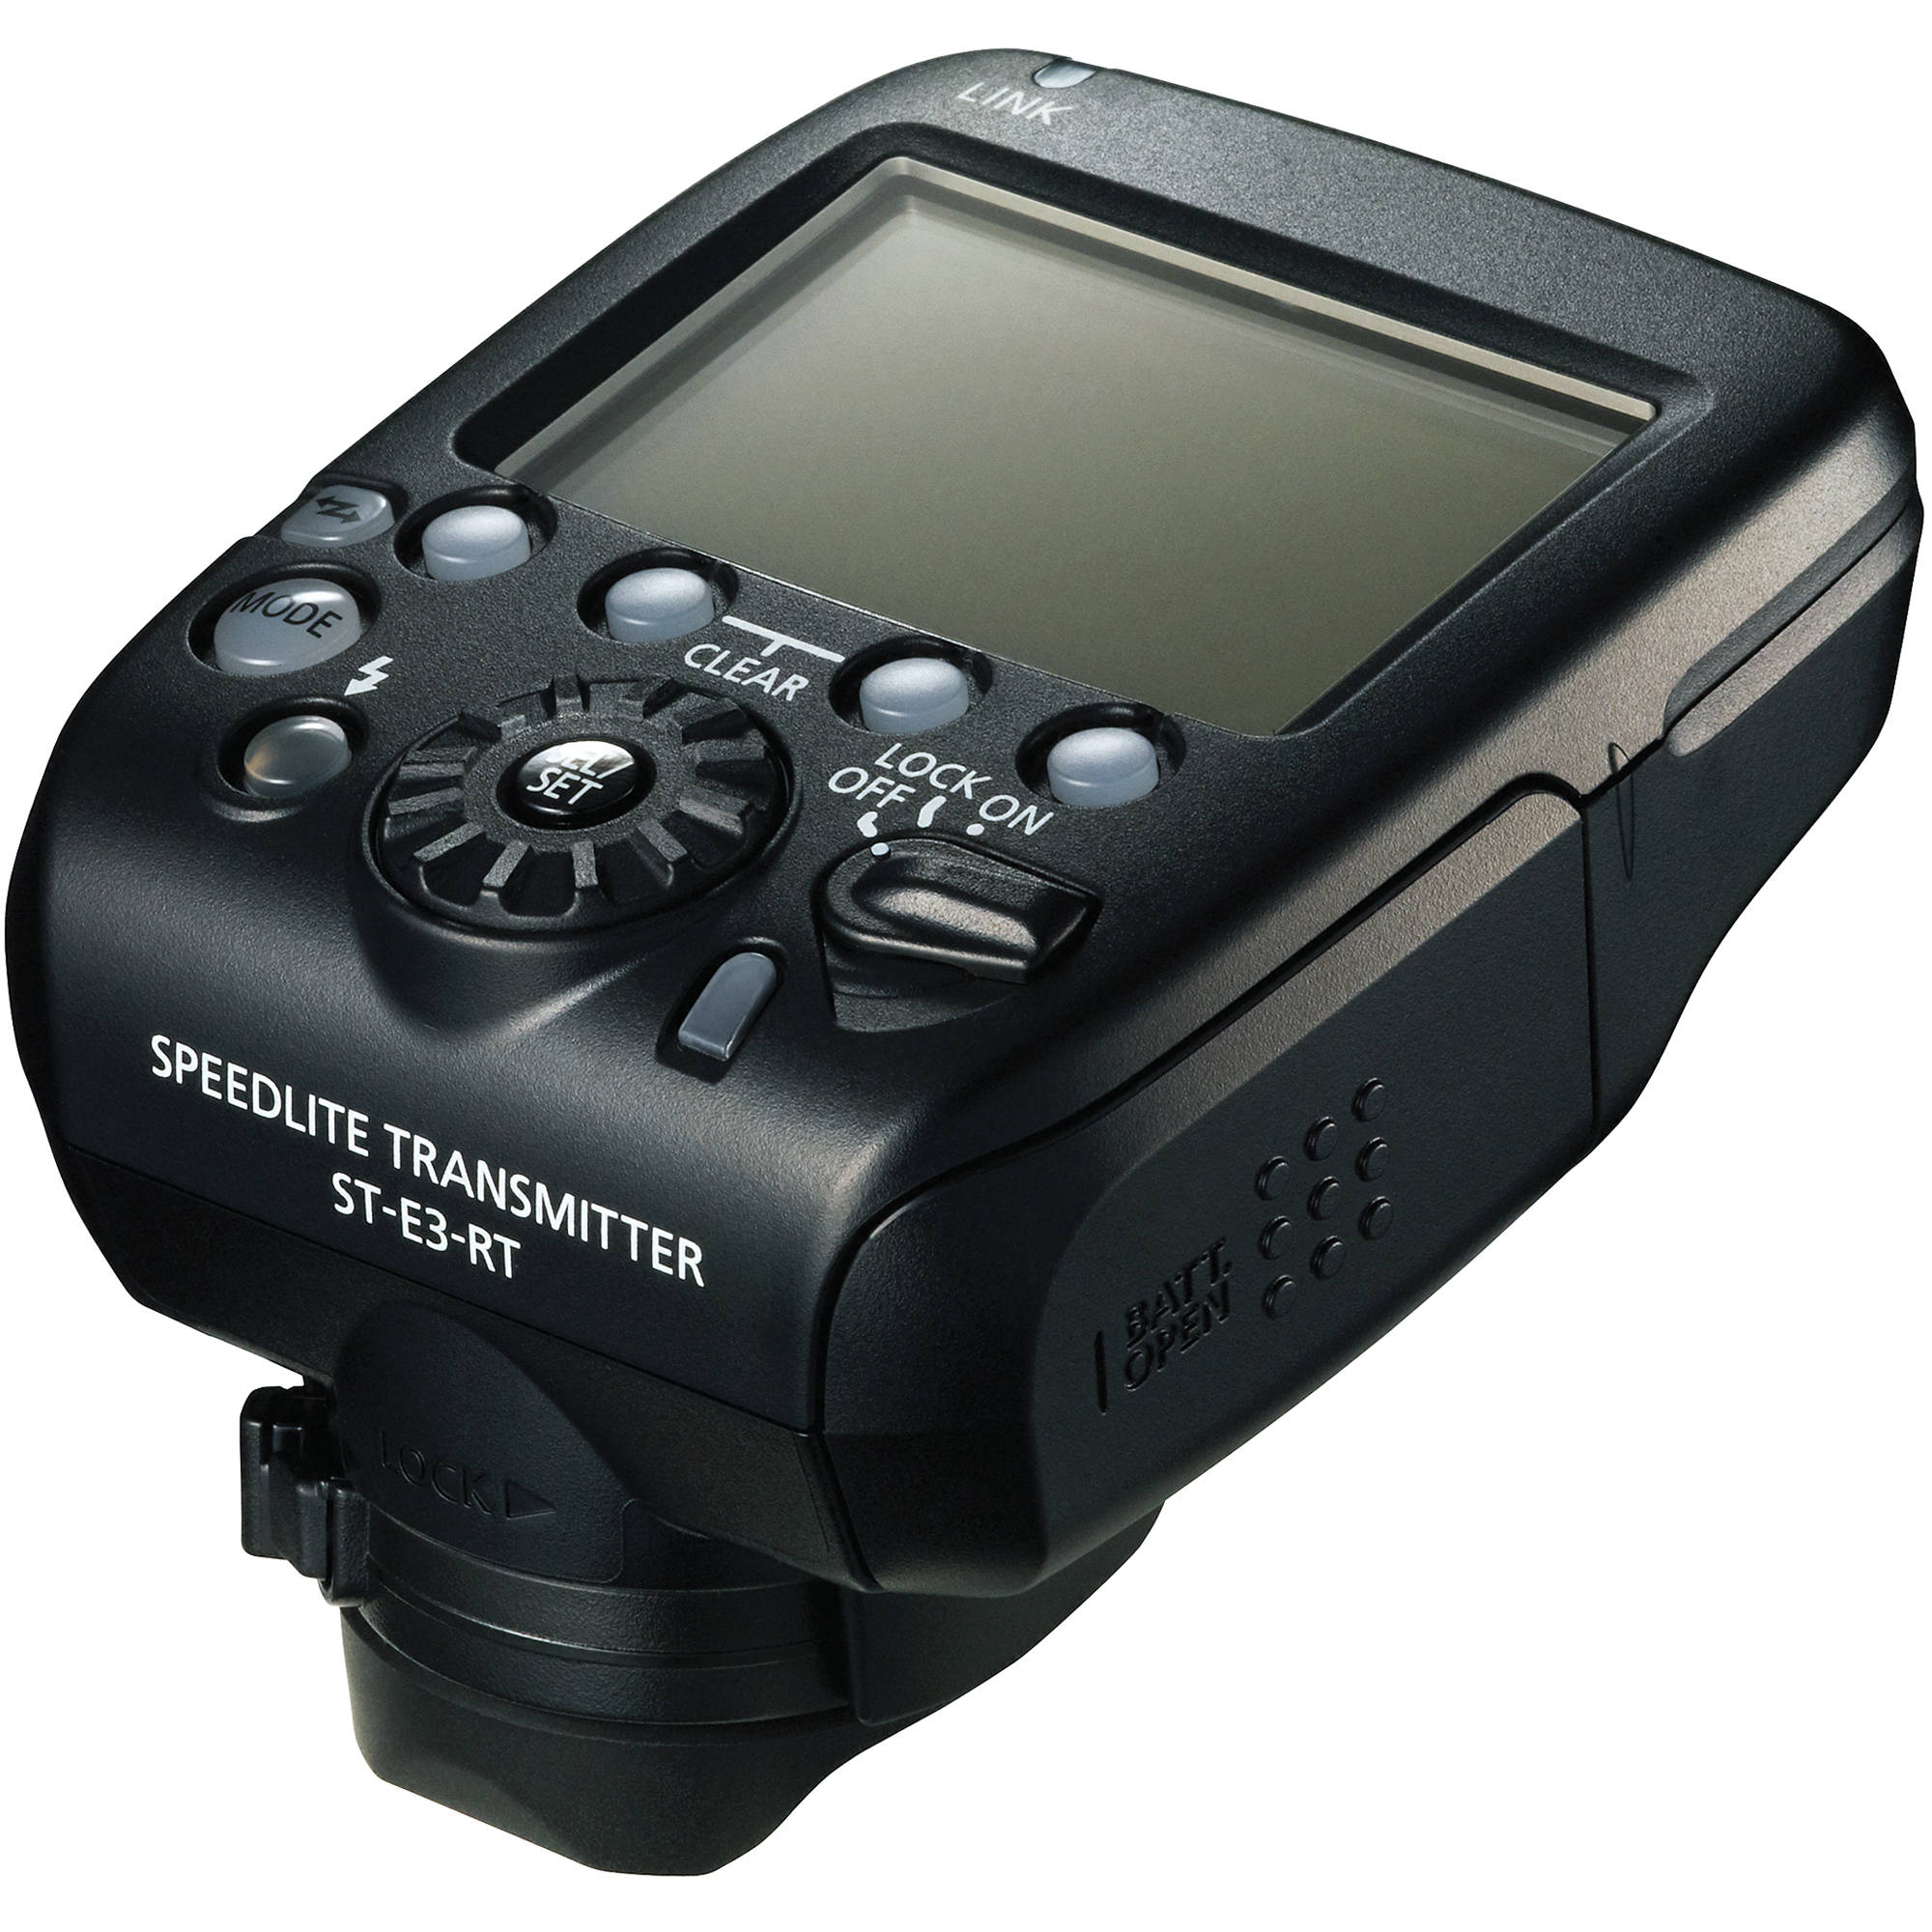 Canon ST-E3-RT Speedlite Transmitter for 600EX-RT Image